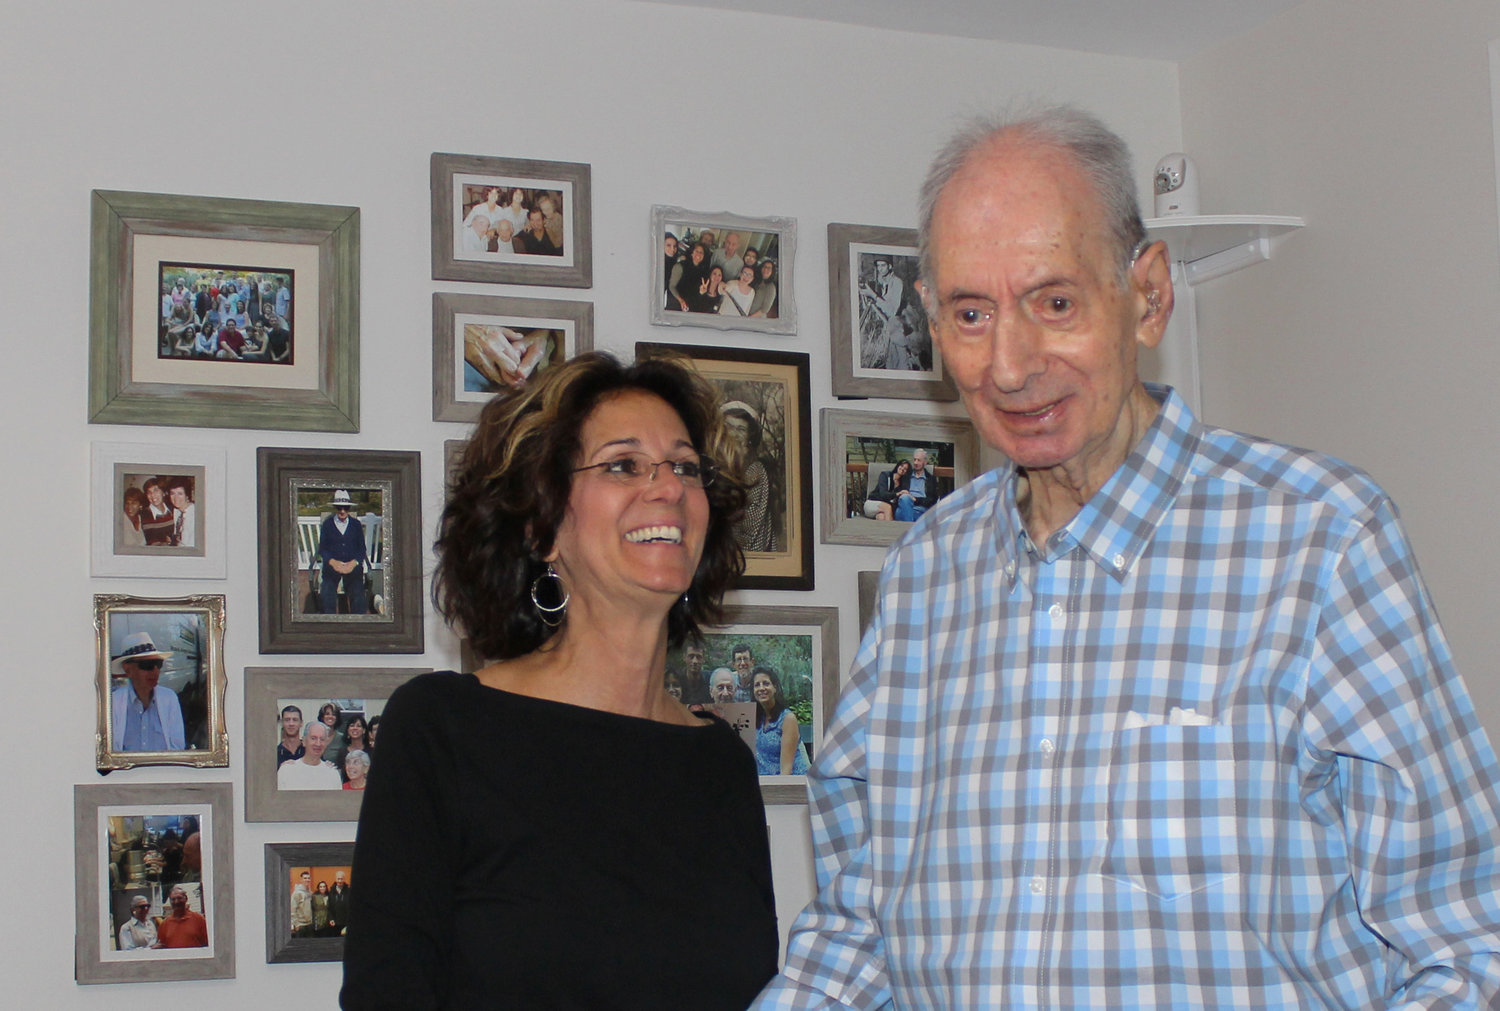 Stanley Shubin, who will be 99 on Aug. 25, lives in East Meadow with his daughter Randi Shubin Dresner. Behind them is a wall of photos commemorating some of the highlights of Shubin's life.